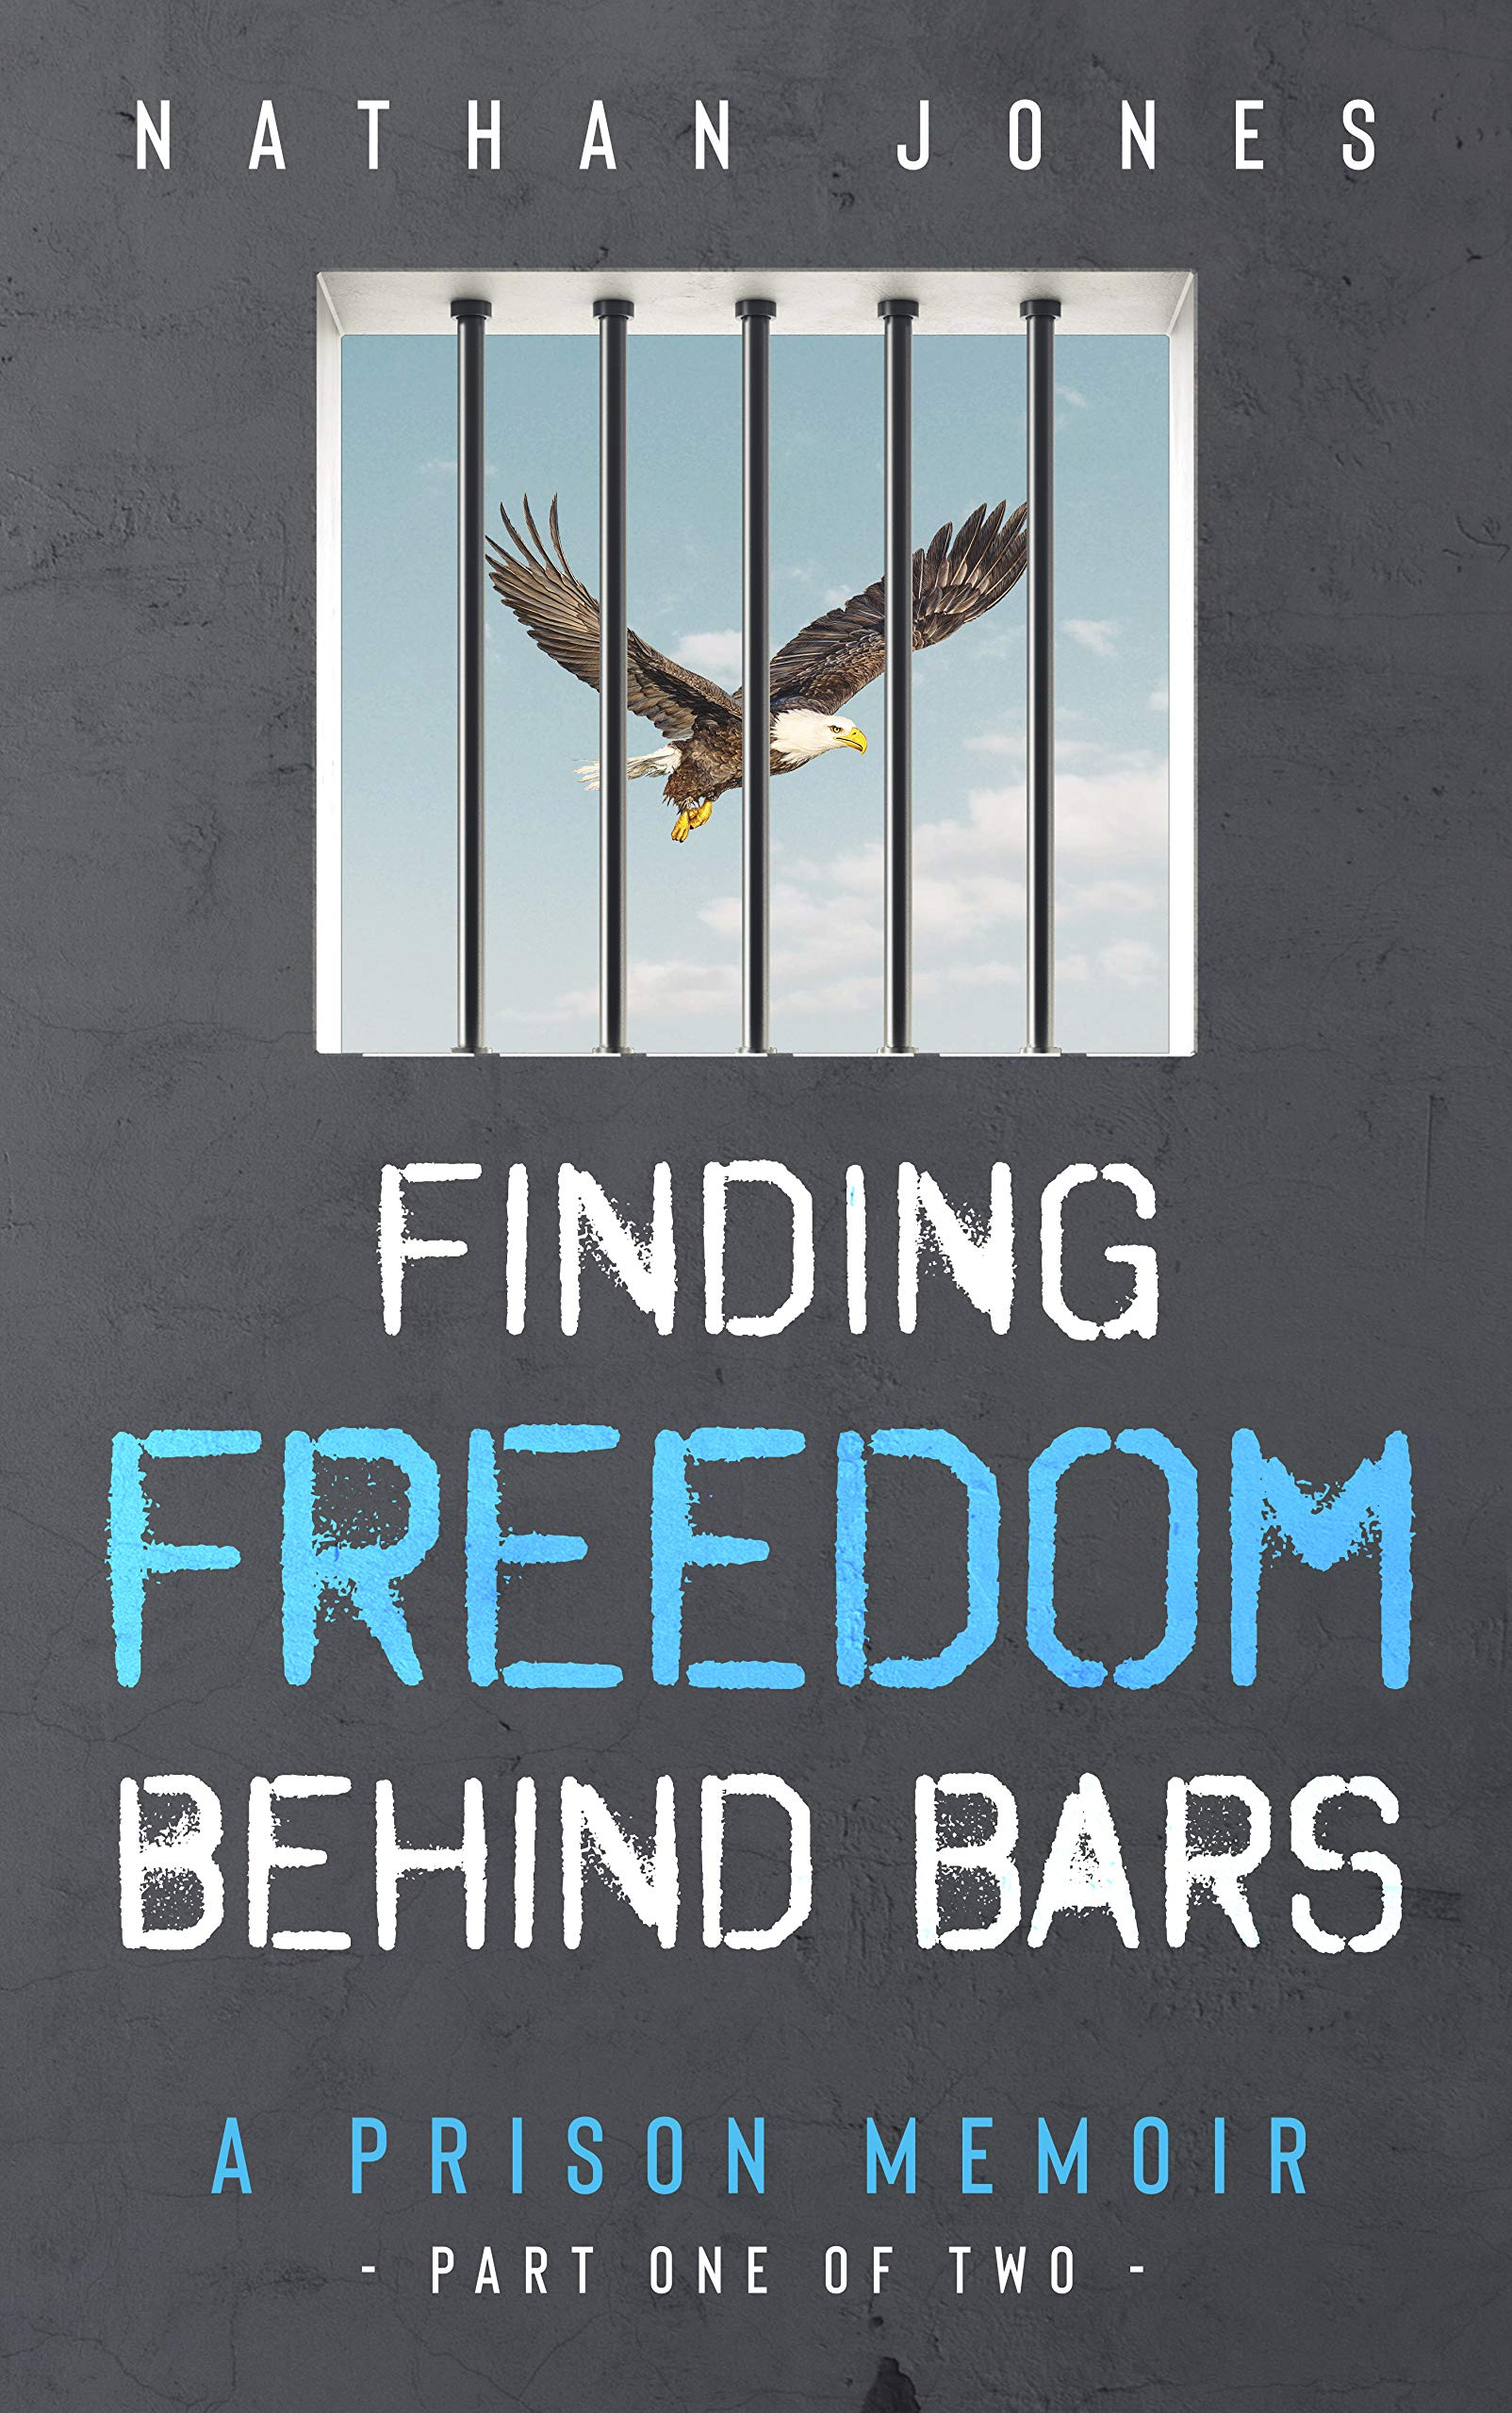 Finding Freedom Behind Bars: A Prison Memoir-Part One of Two